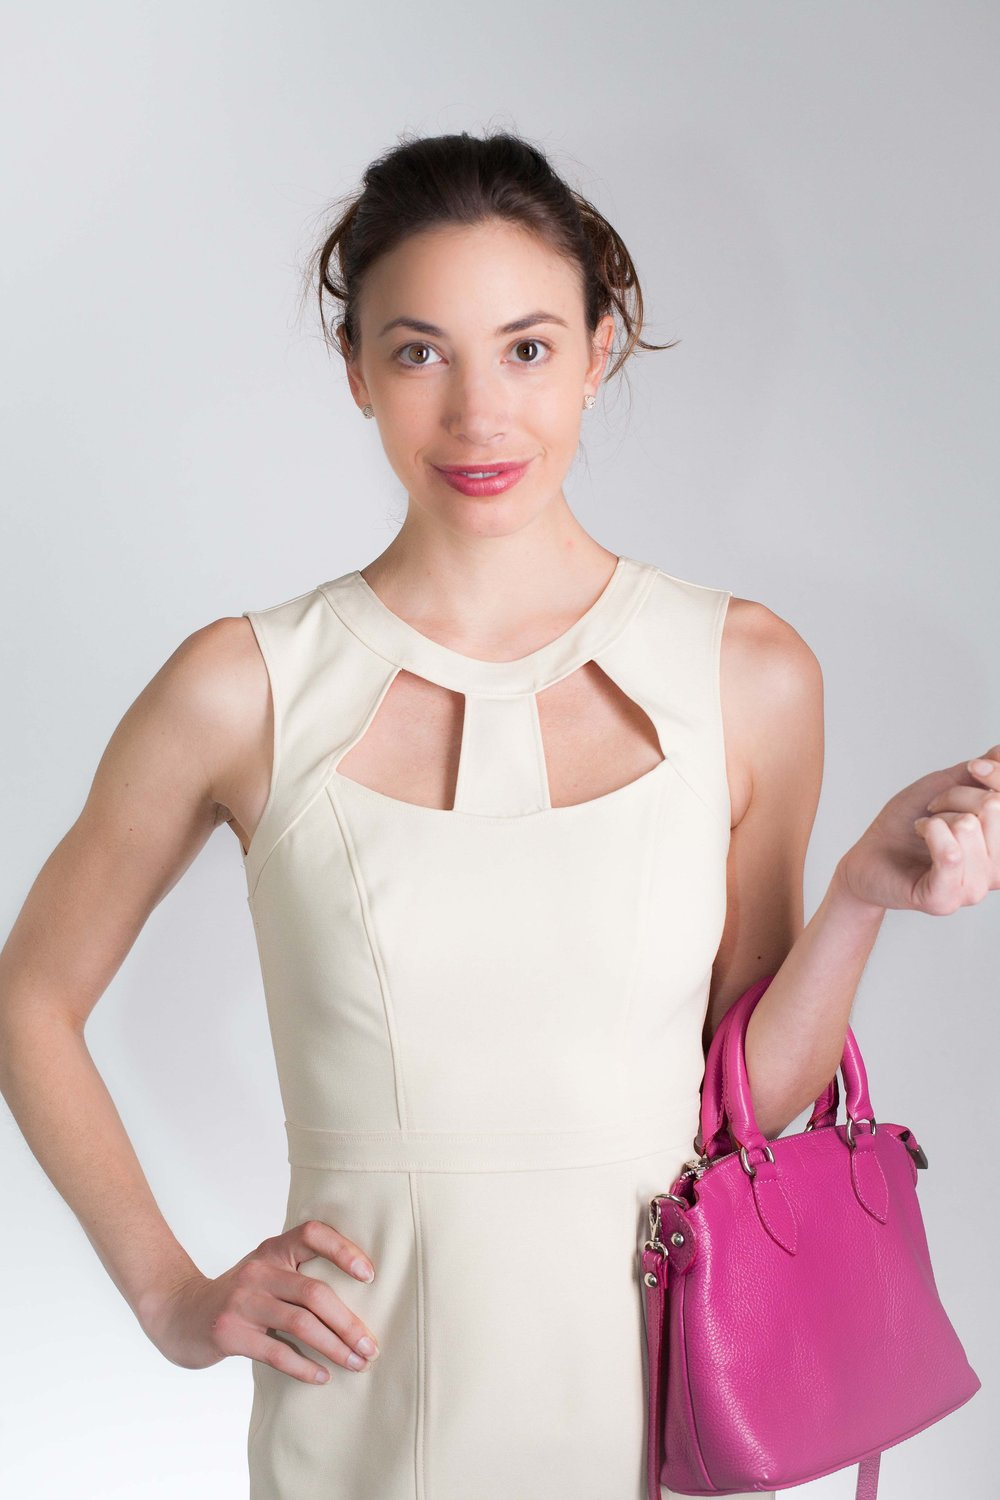 cut-out cocktail dress byMaria Bianca Nero